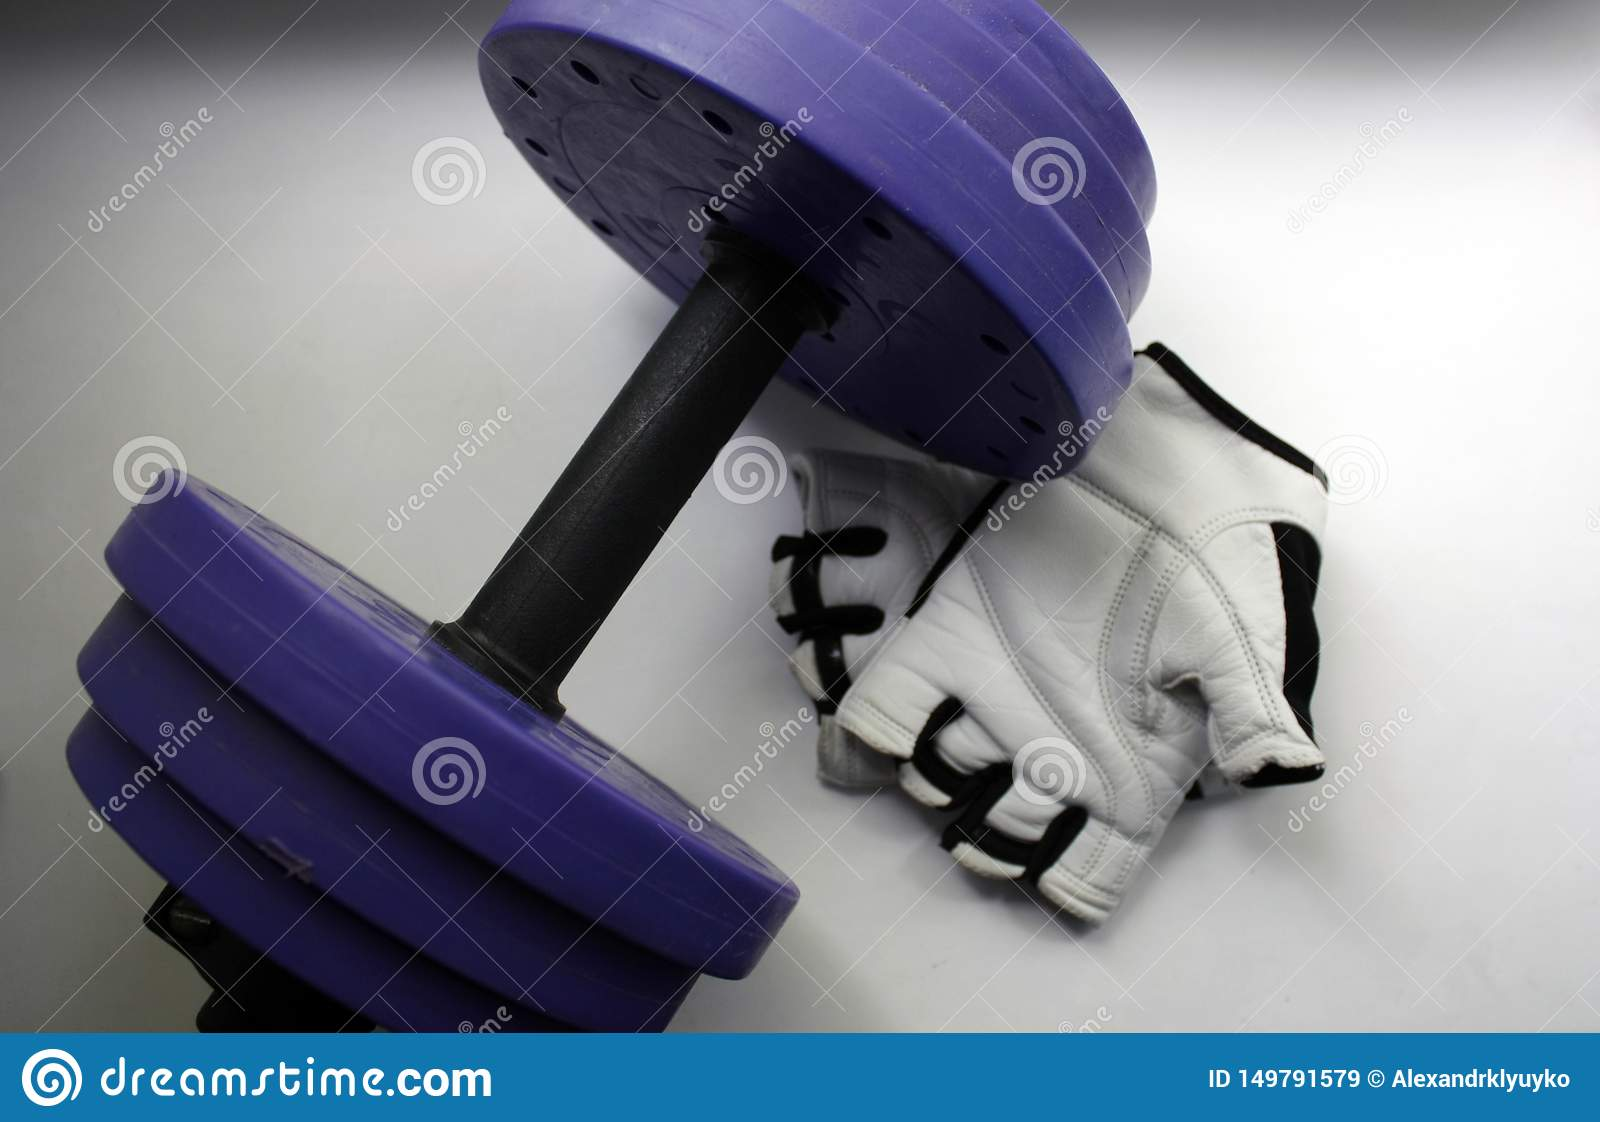 Sports accessories. Dumbbells, gloves, on a white background. Top view with copy space. Fitness, sport and healthy lifestyle